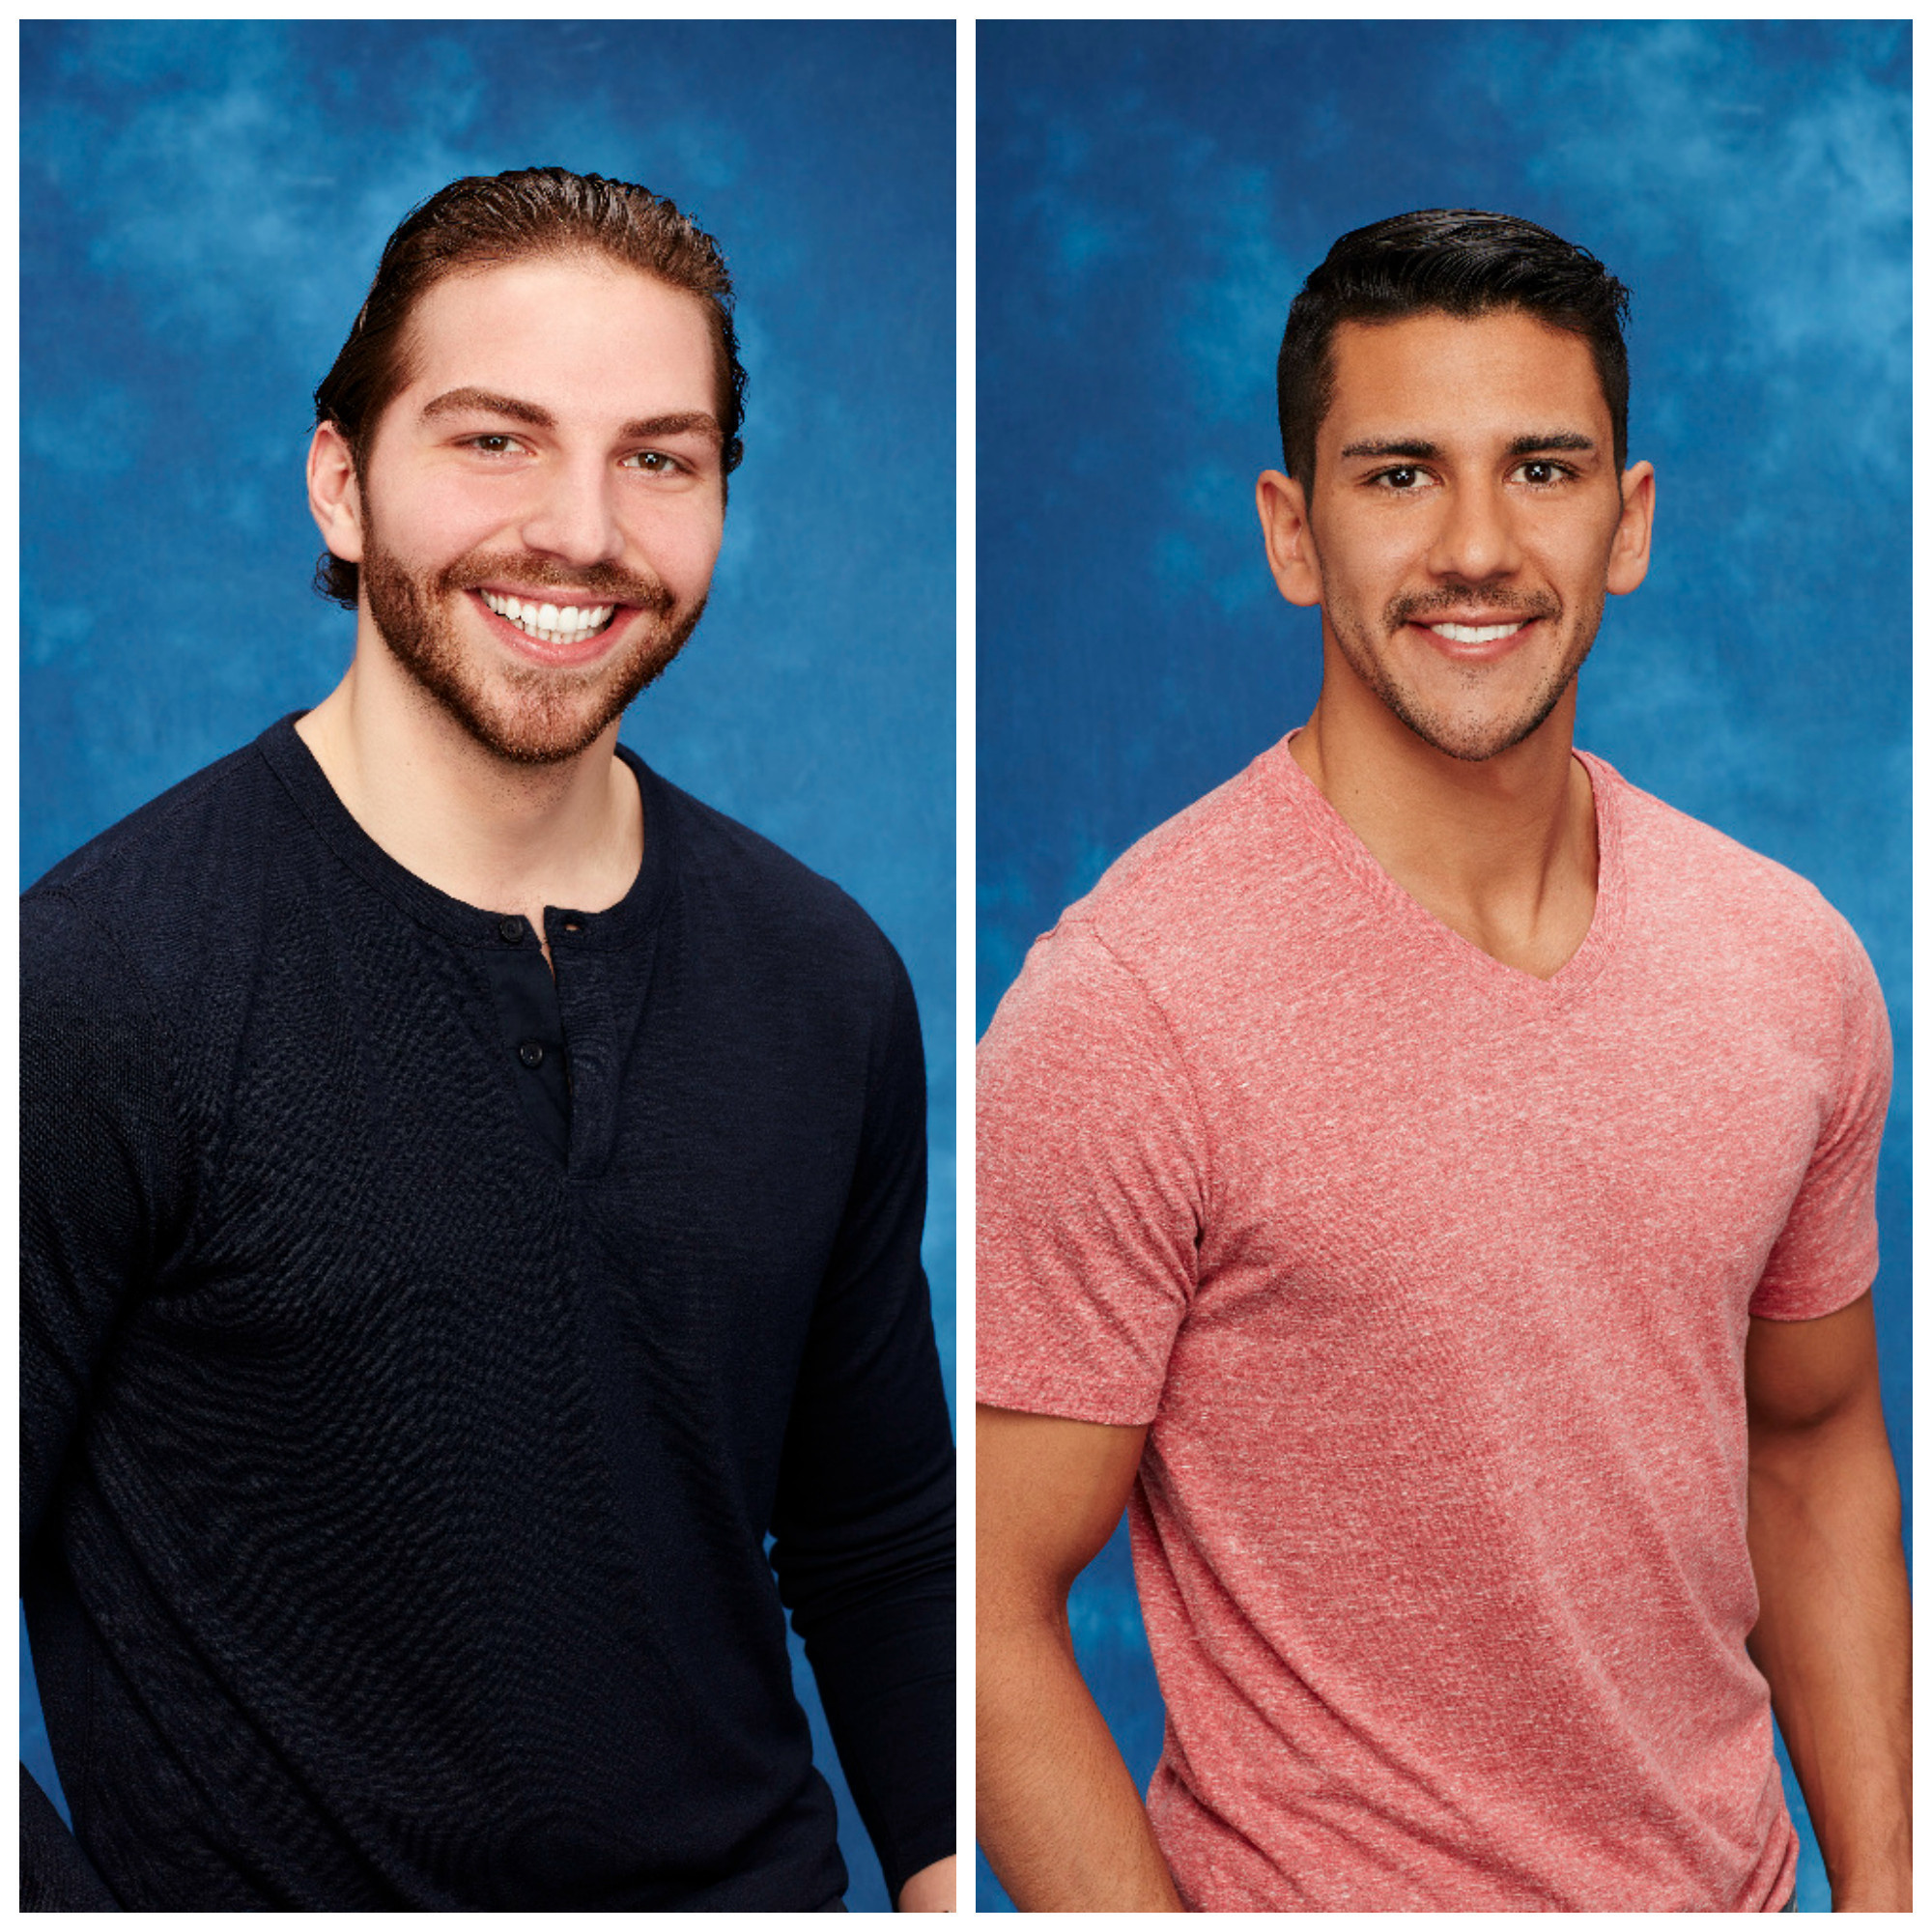 2 Chicago Men Vying For JoJo Fletchers Heart On The Bachelorette